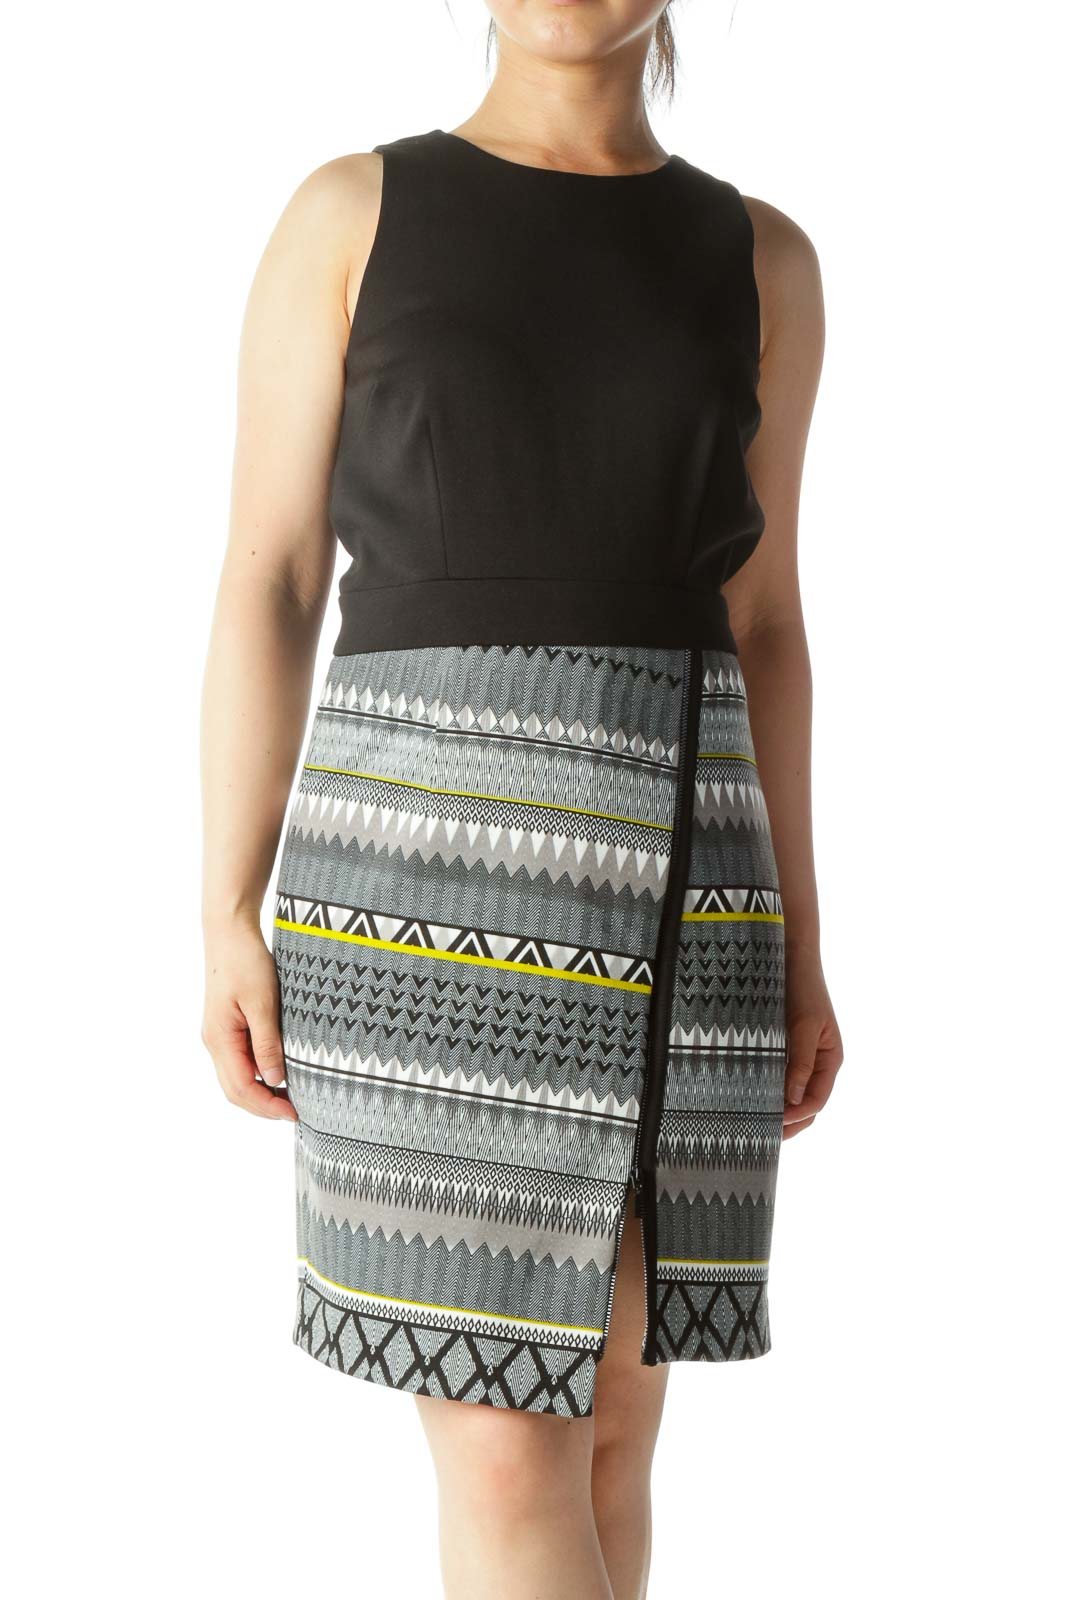 Black White Gray Yellow Skirt Print Zipper Accent Dress